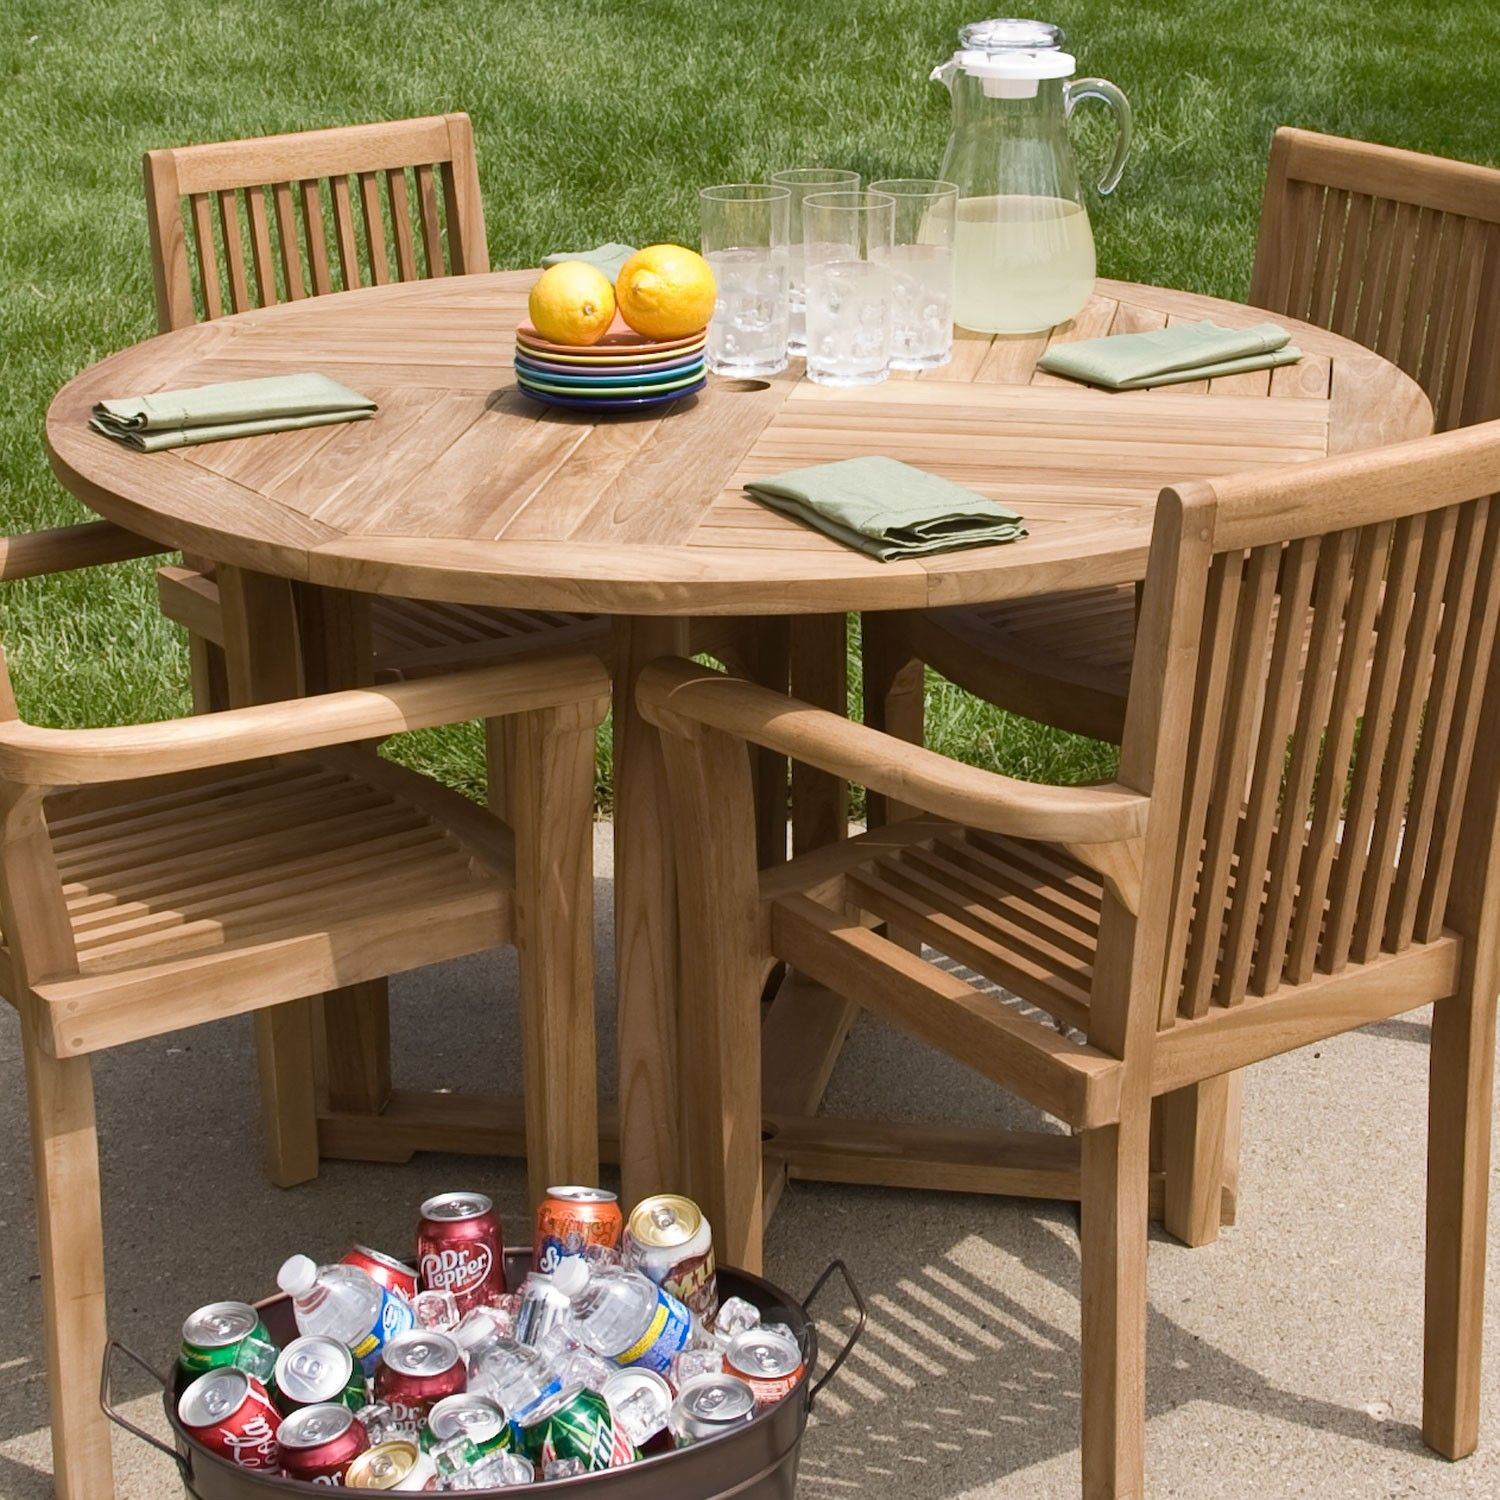 Teak Round Dining Table (With images) | Teak patio furniture